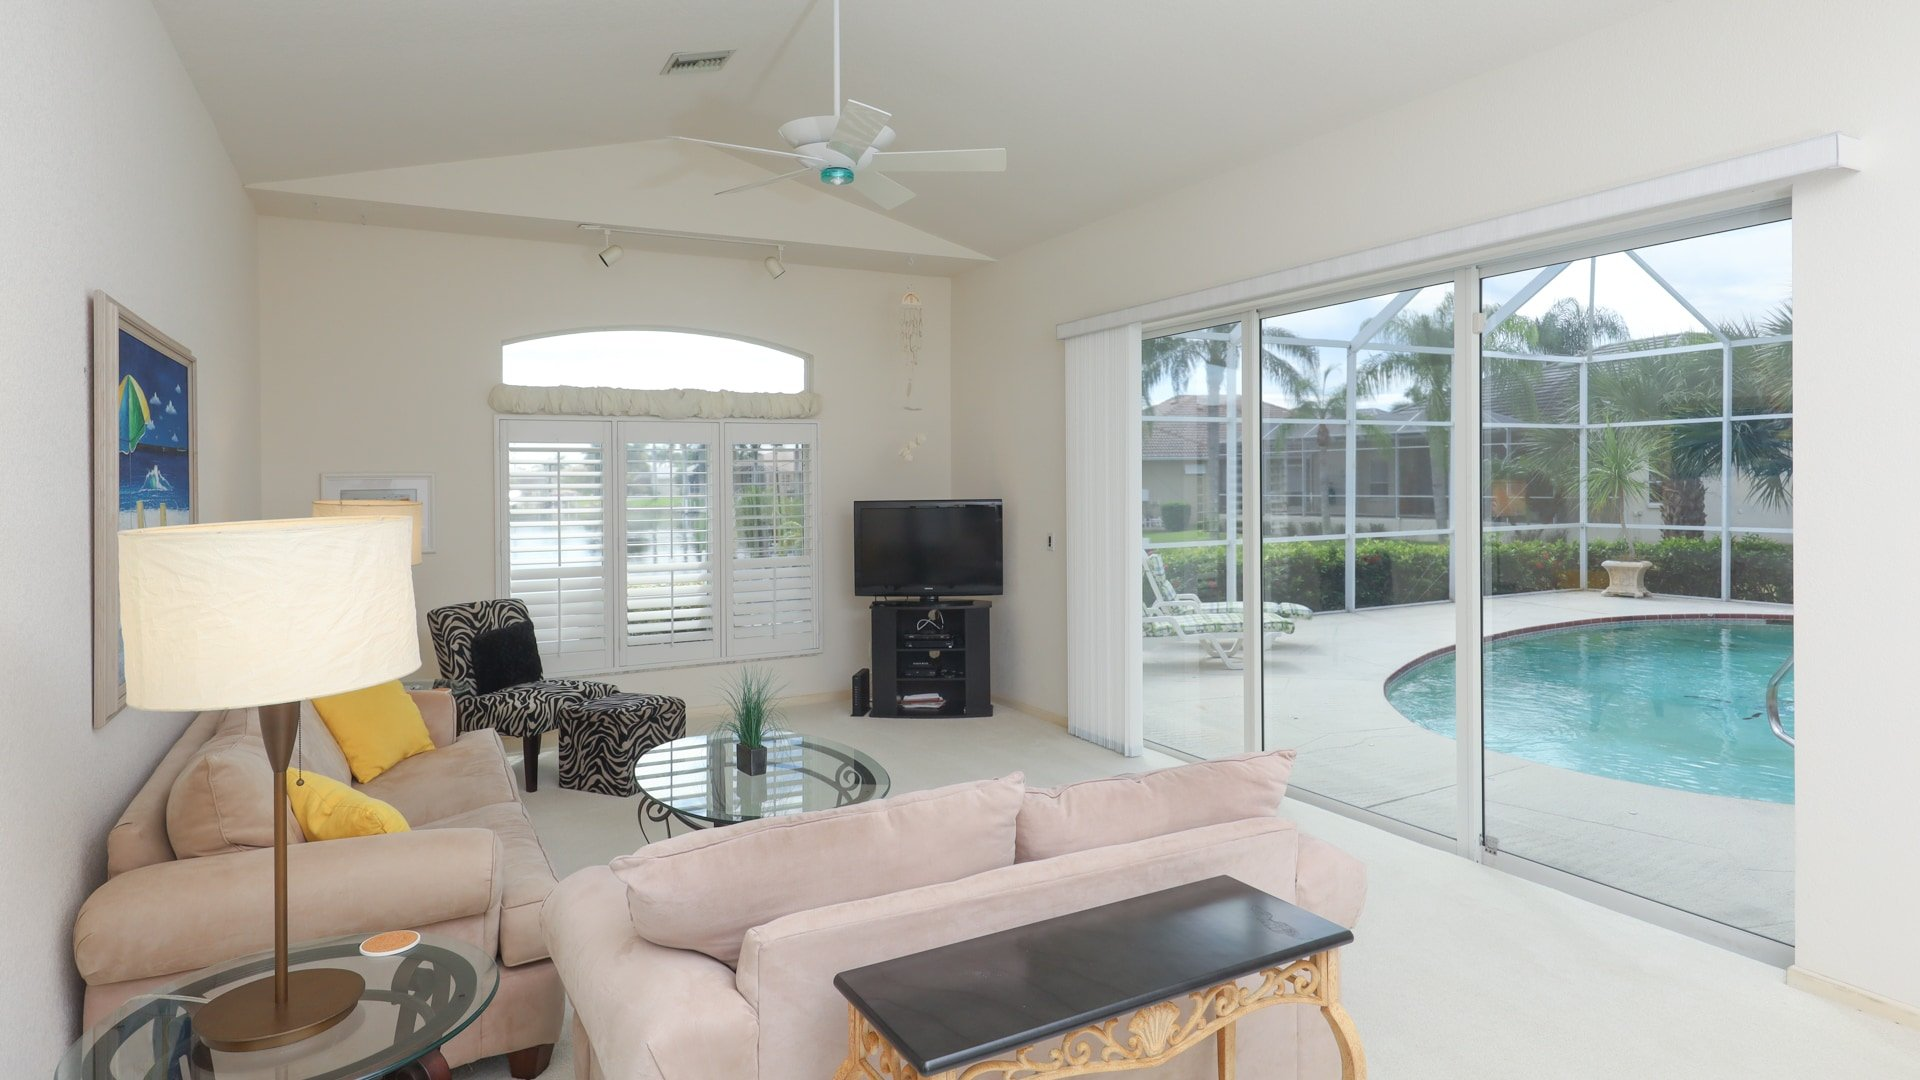 3836 Paola Dr-212764